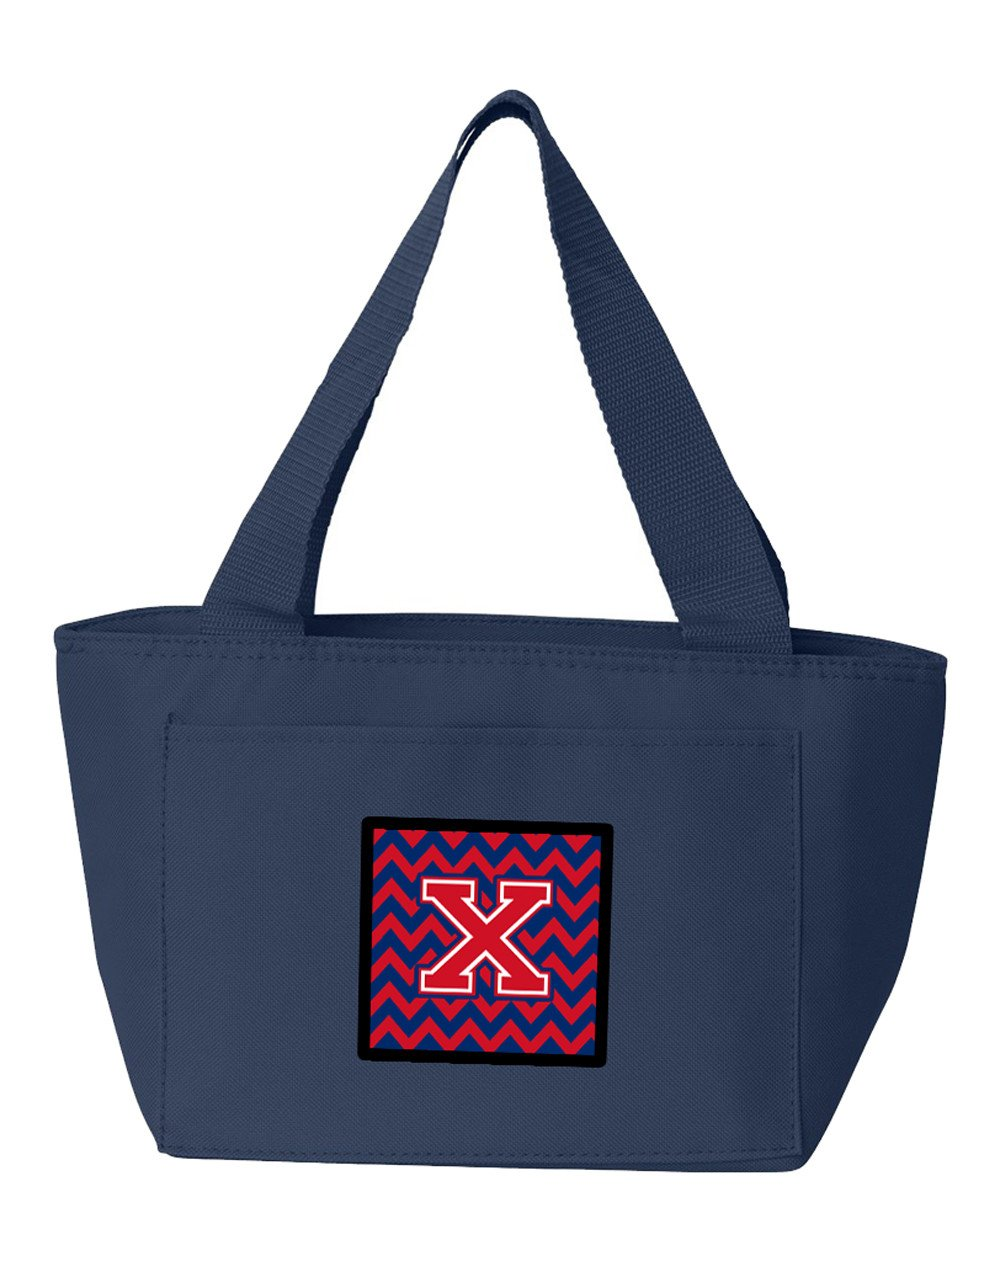 Letter X Chevron Yale Blue and Crimson Lunch Bag CJ1054-XNA-8808 by Caroline's Treasures